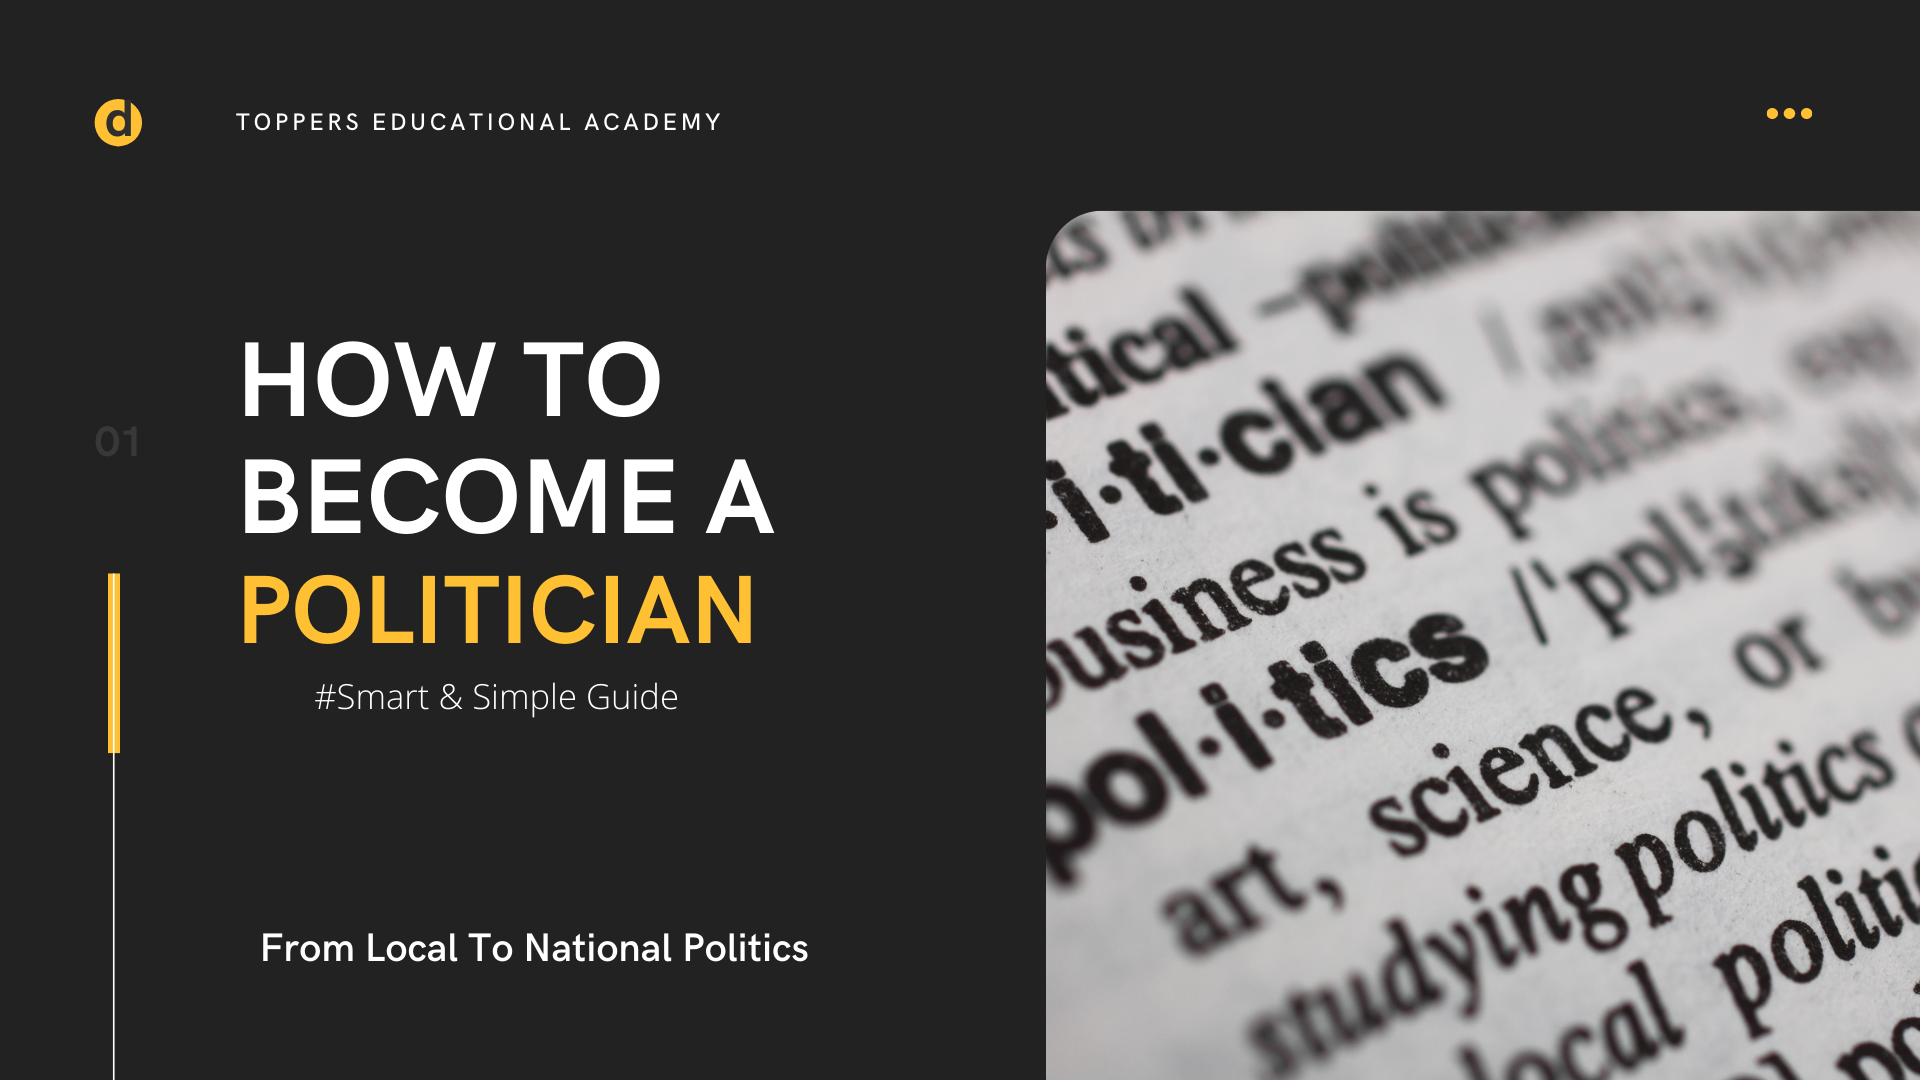 How to become a politician